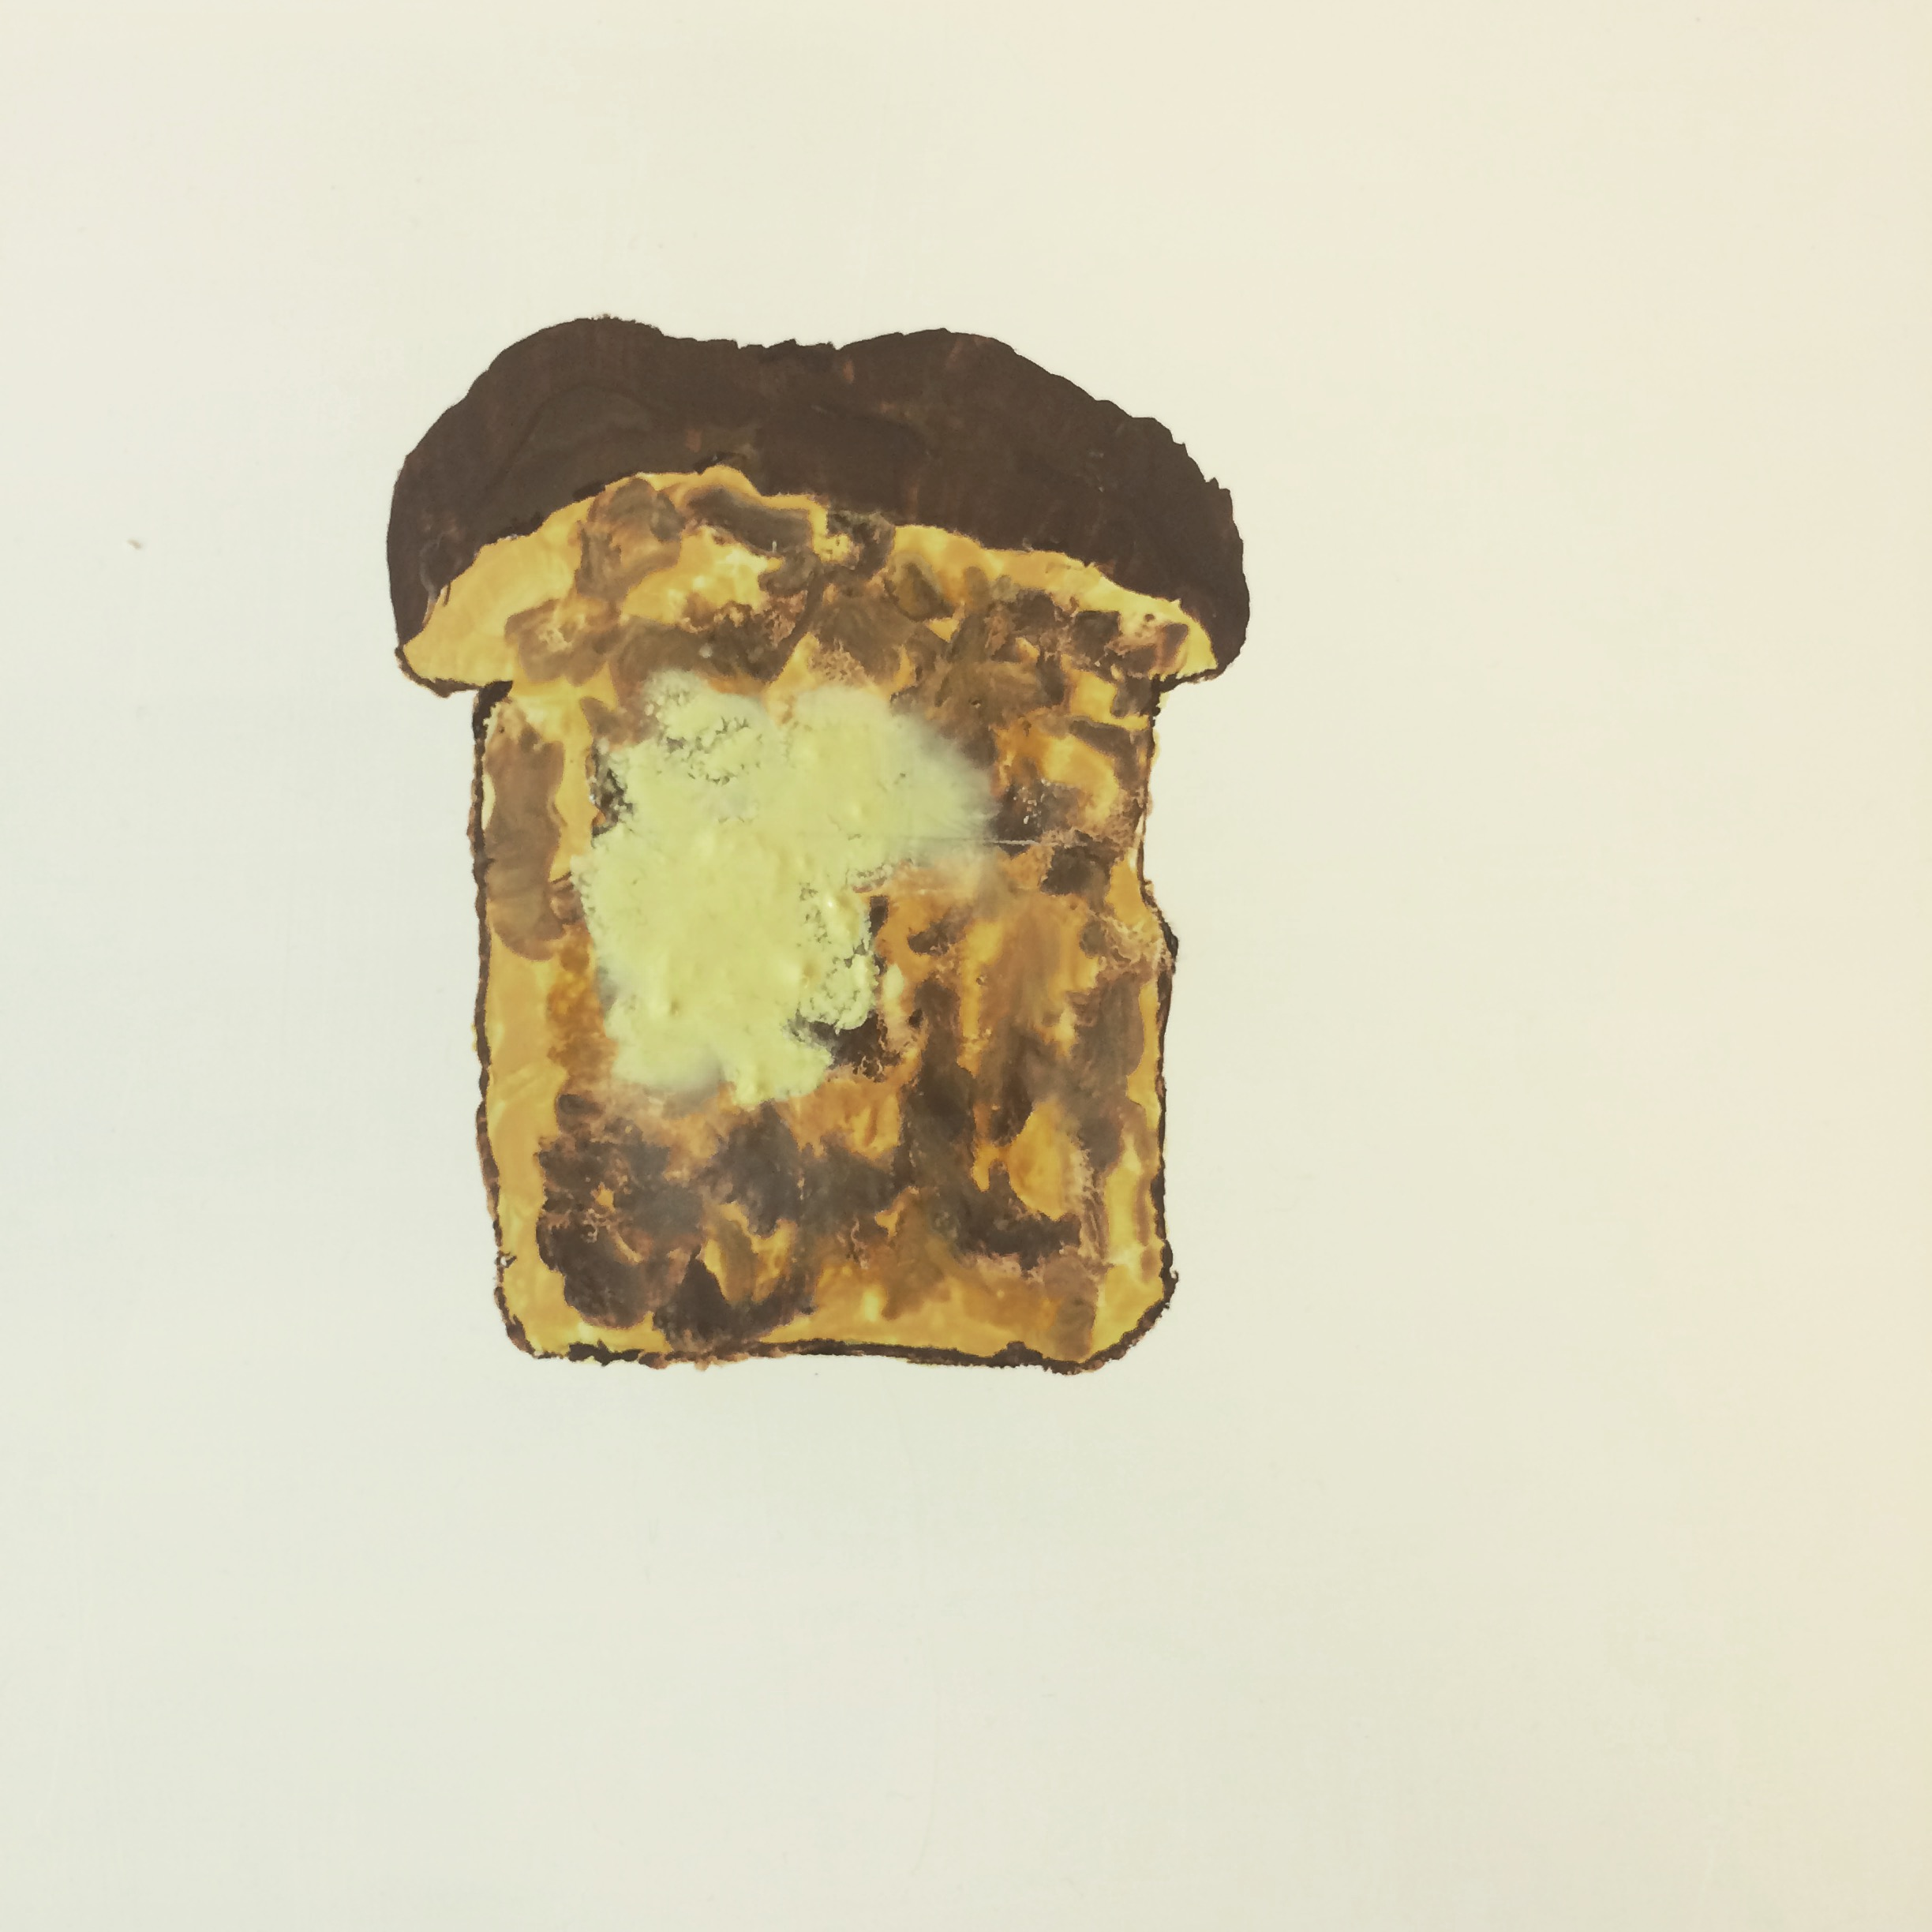 An Ode to My Mother's French Toast